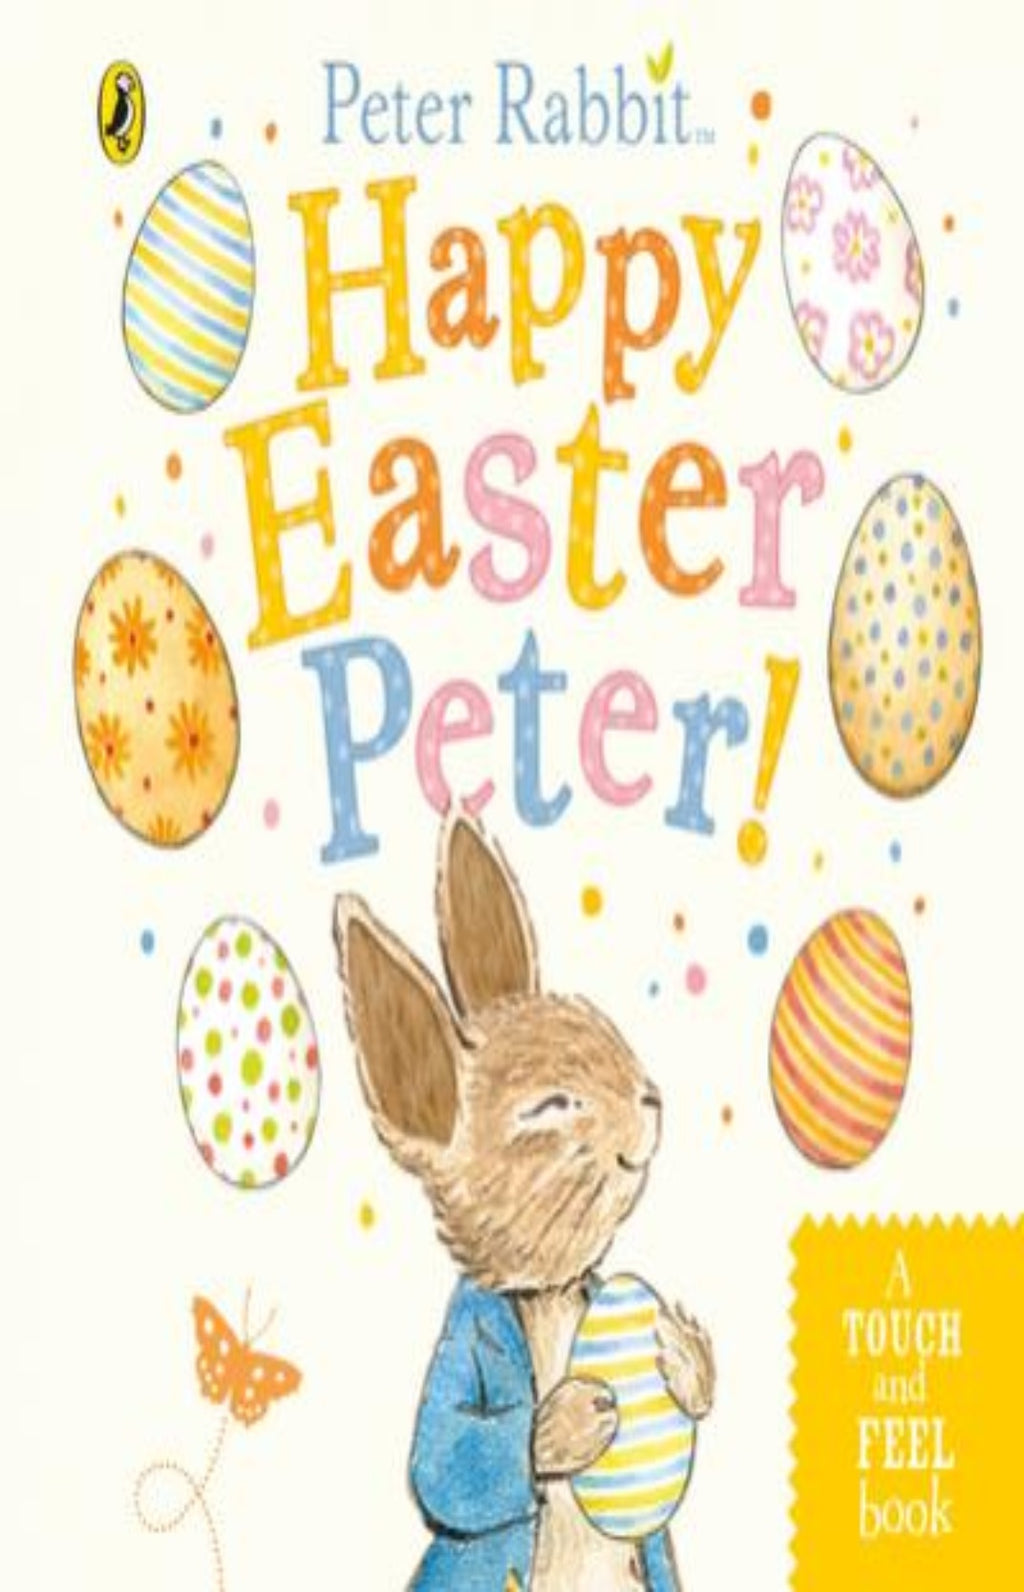 Peter Rabbit : Happy Easter Peter!